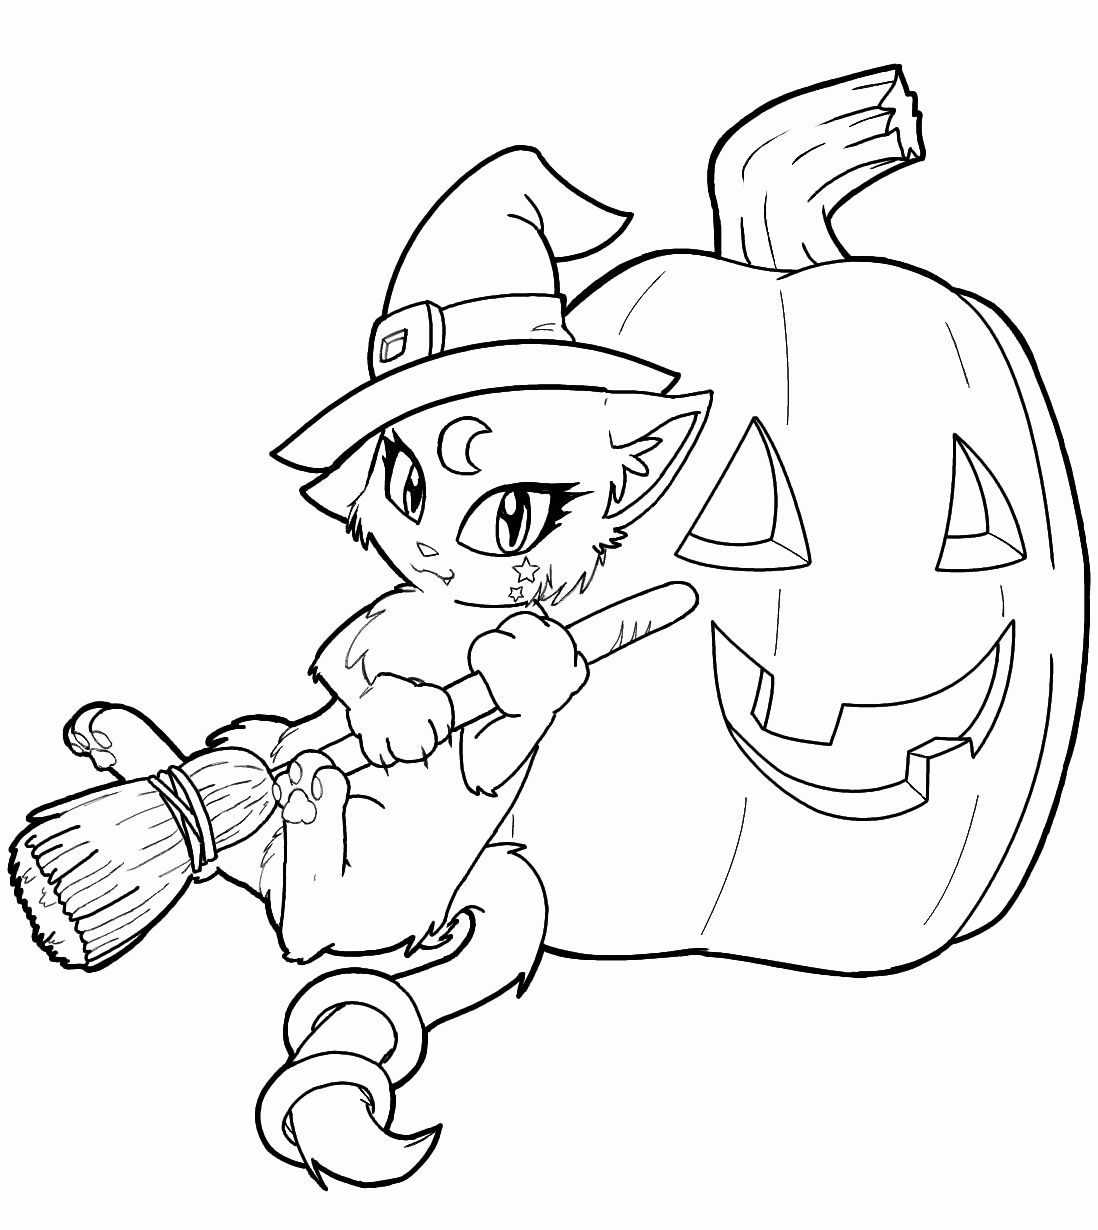 Free Printable Halloween Pictures Unique Free Printable Witch Coloring Pages for Kids